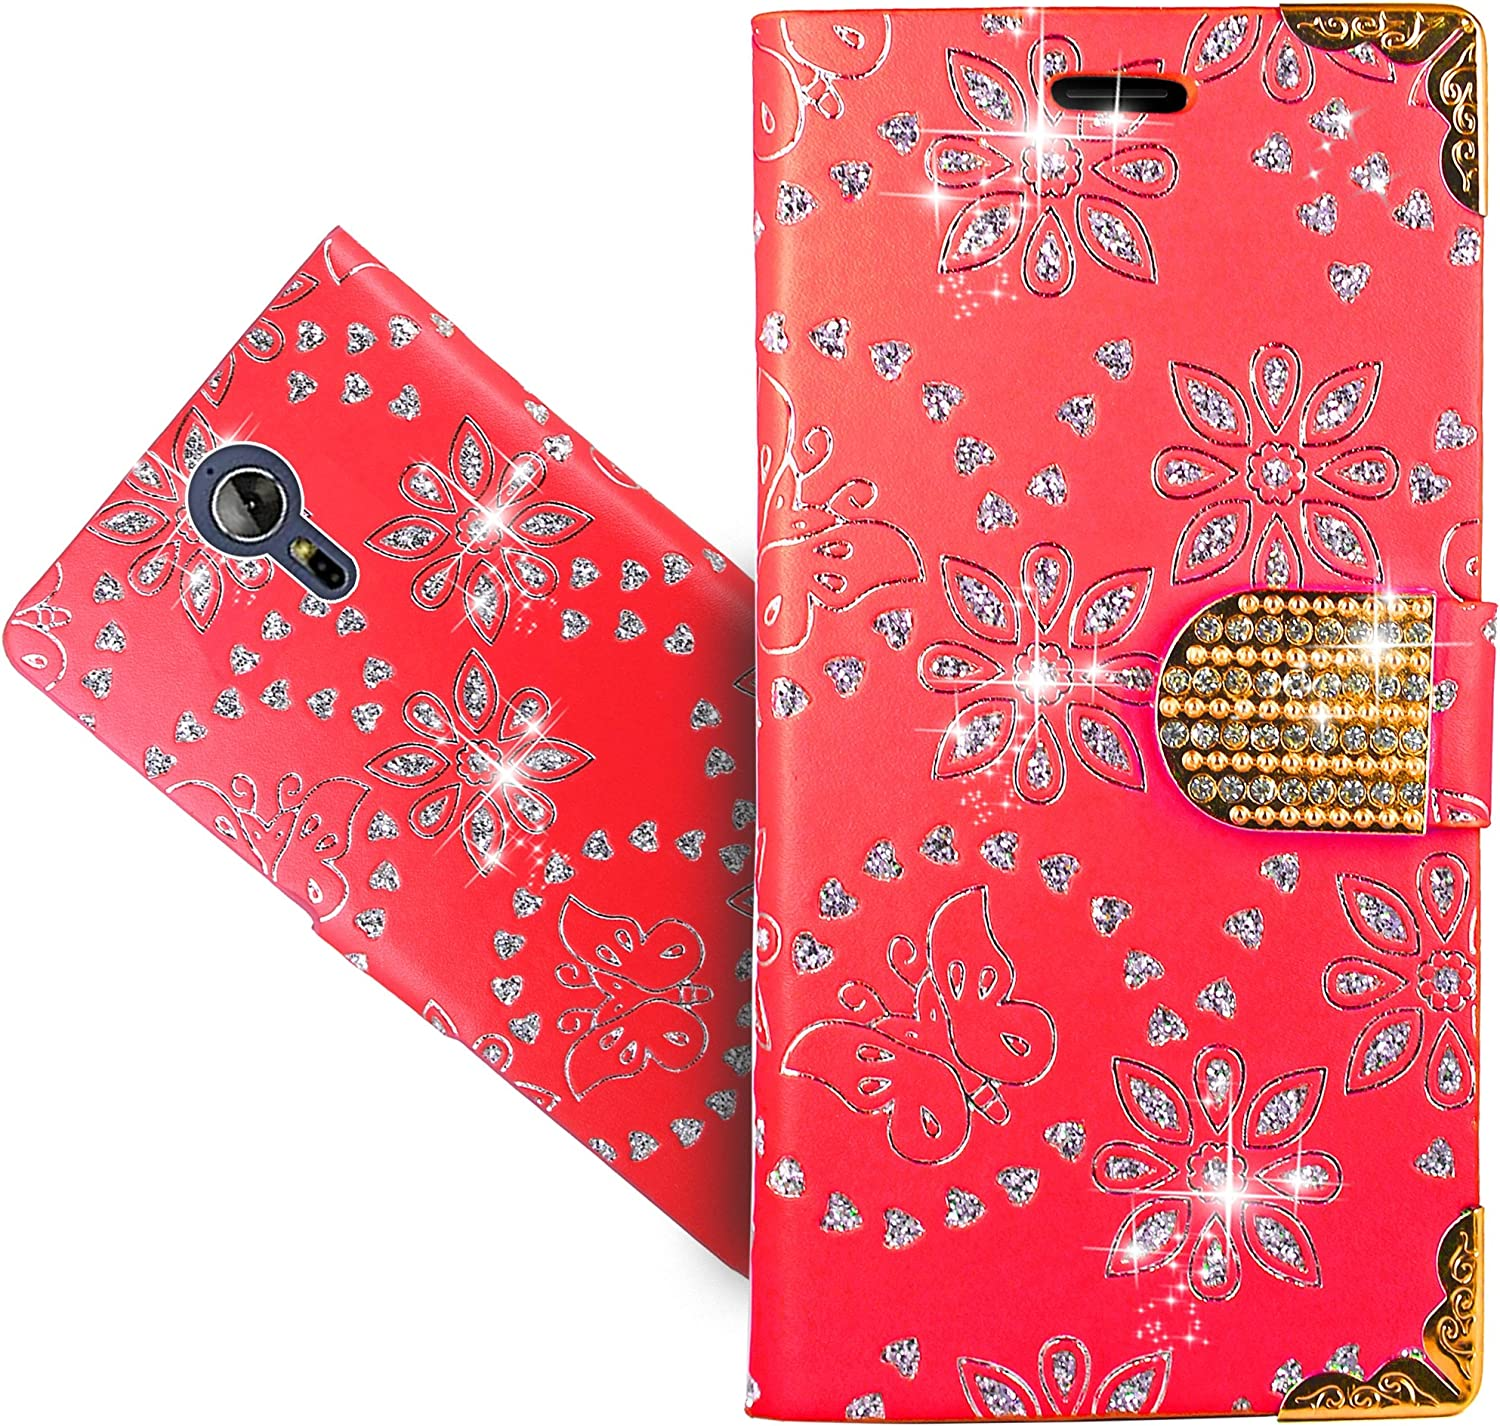 Acer Liquid Zest Plus Case, FoneExpert Bling Diamond Butterfly Flowers Leather Kickstand Flip Wallet Bag Case Cover For Acer Liquid Zest Plus